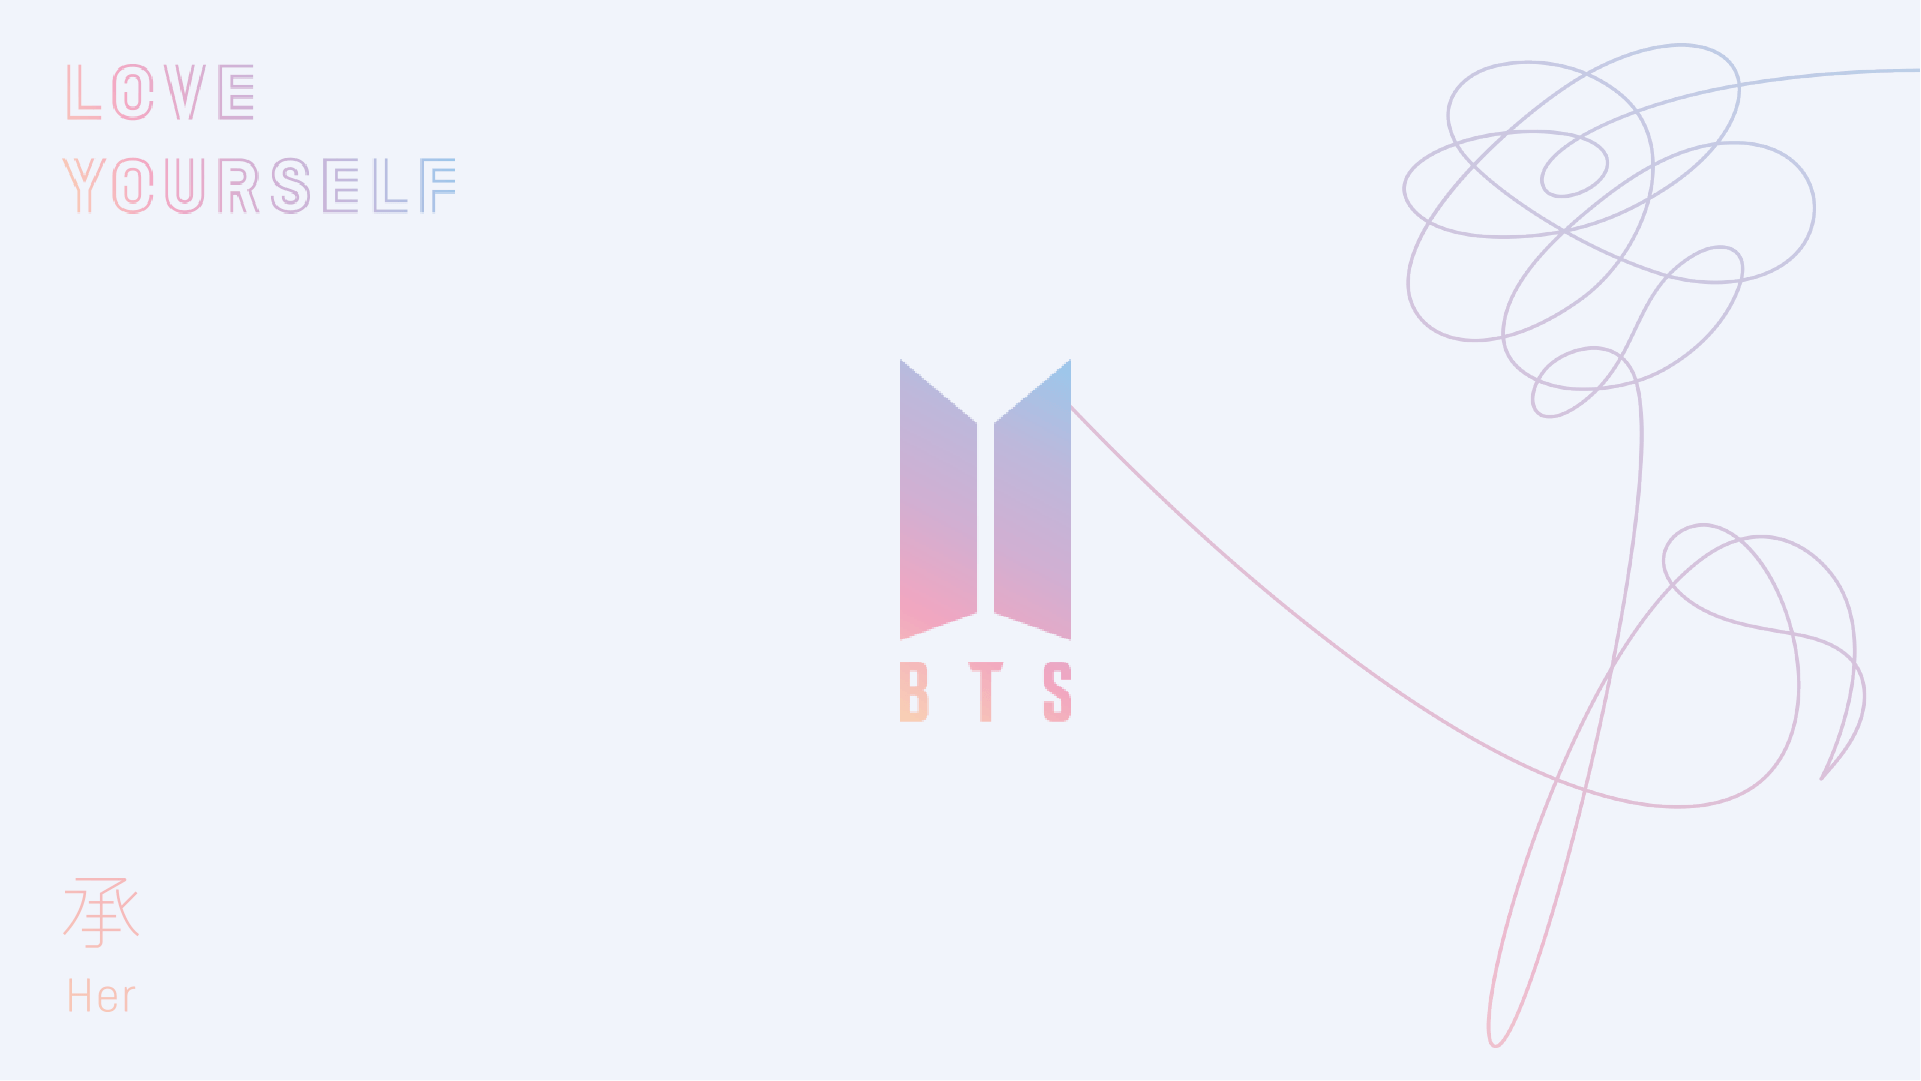 Bts Wallpaper Desktop Love Yourself Many HD Wallpaper